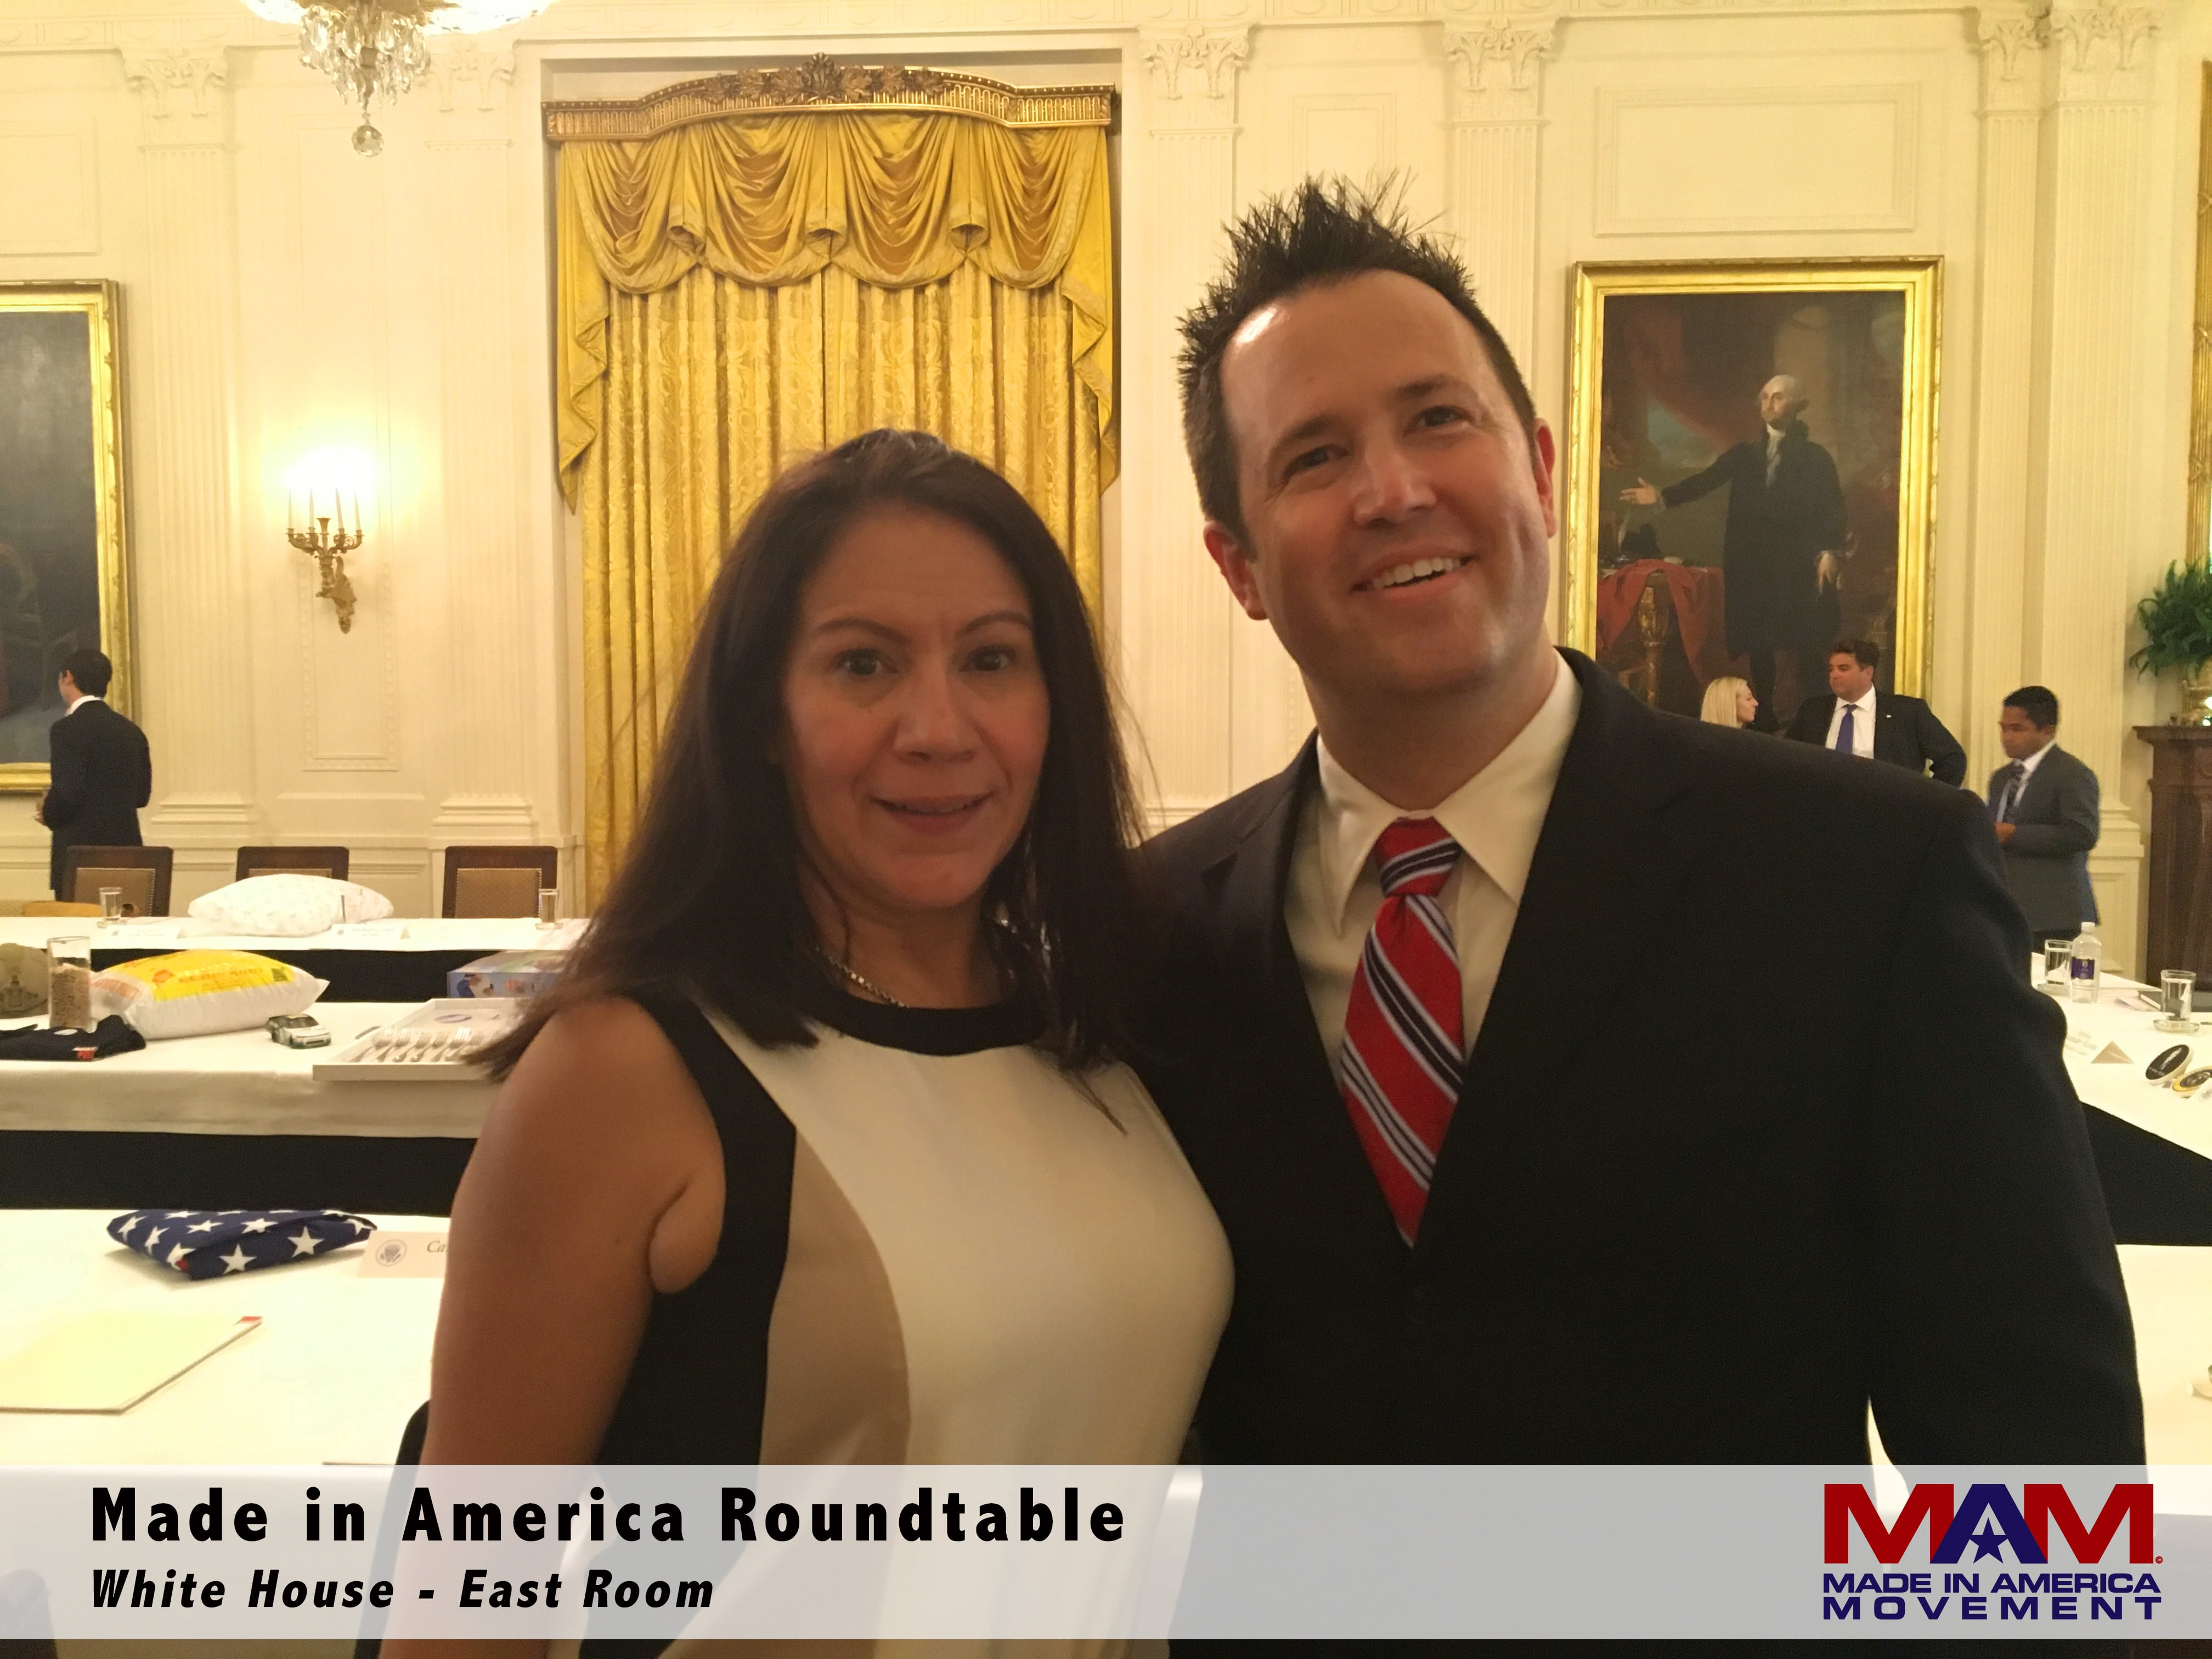 a055494d0ed84 Margarita Mendoza (CEO and Founder) and Kurt Uhlir (Chairman) at the Made in  America Roundtable in the East Room of the White House.